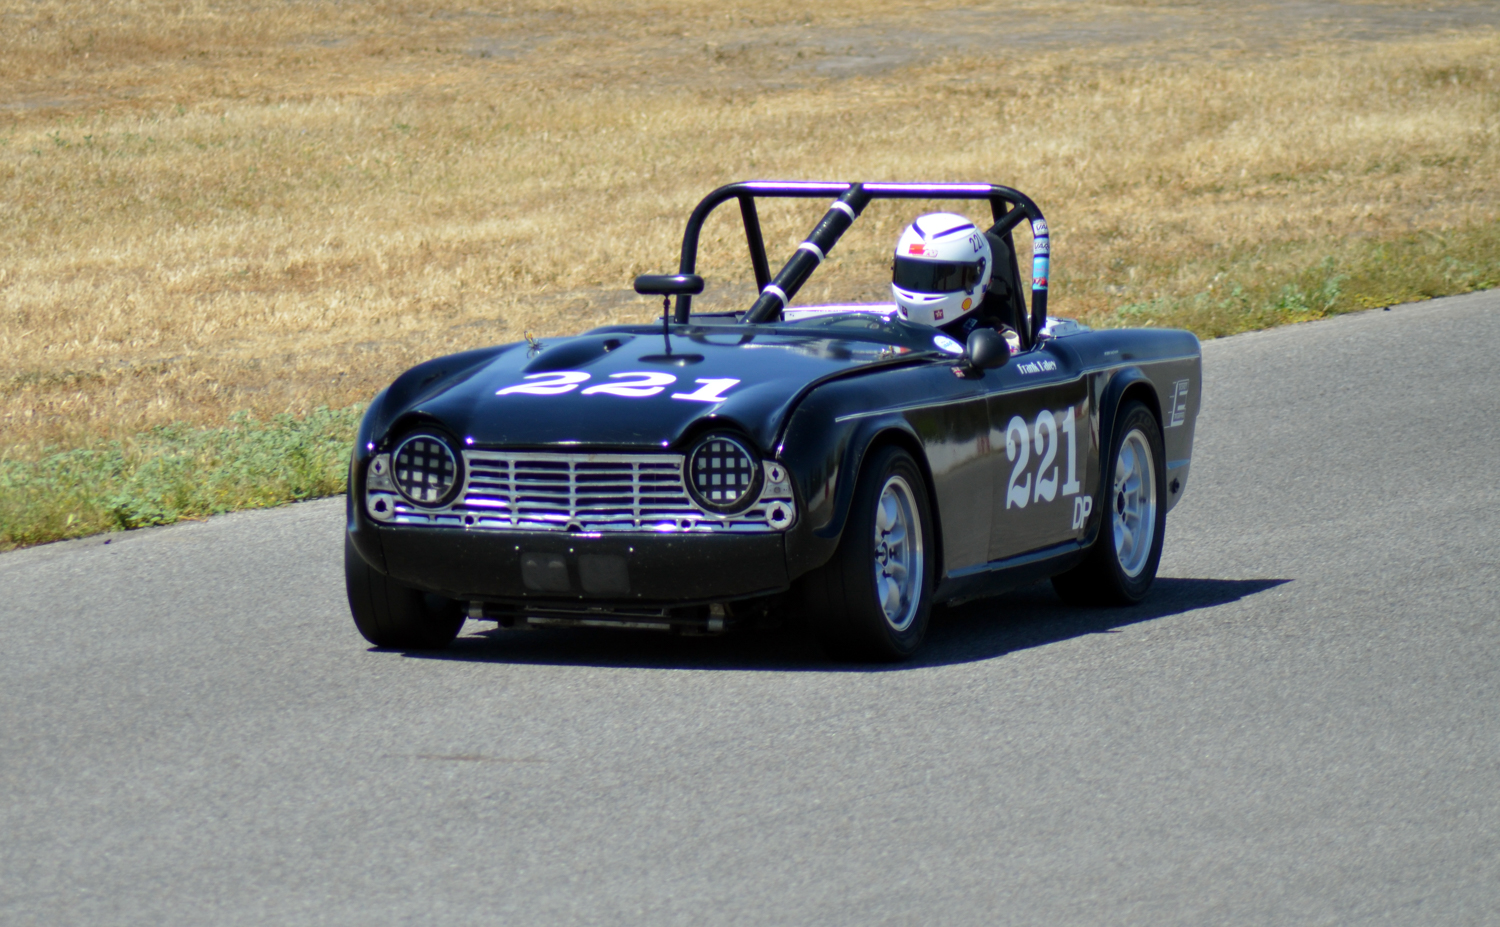 #221 Frank Daley, 1964 TR4, Best Lap: 2:27.263